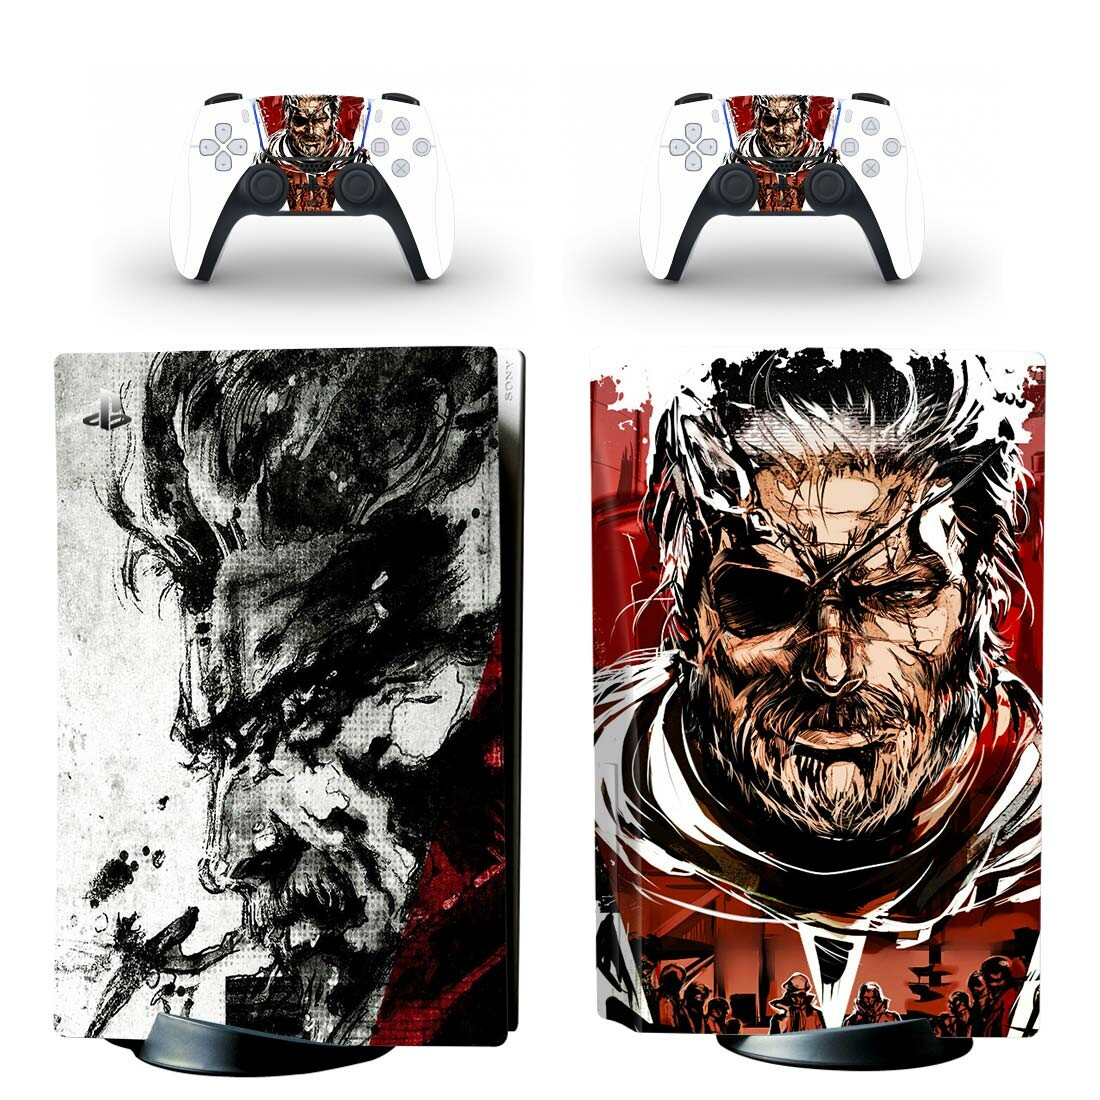 Metal Gear Solid Skin Sticker Decal For PlayStation 5